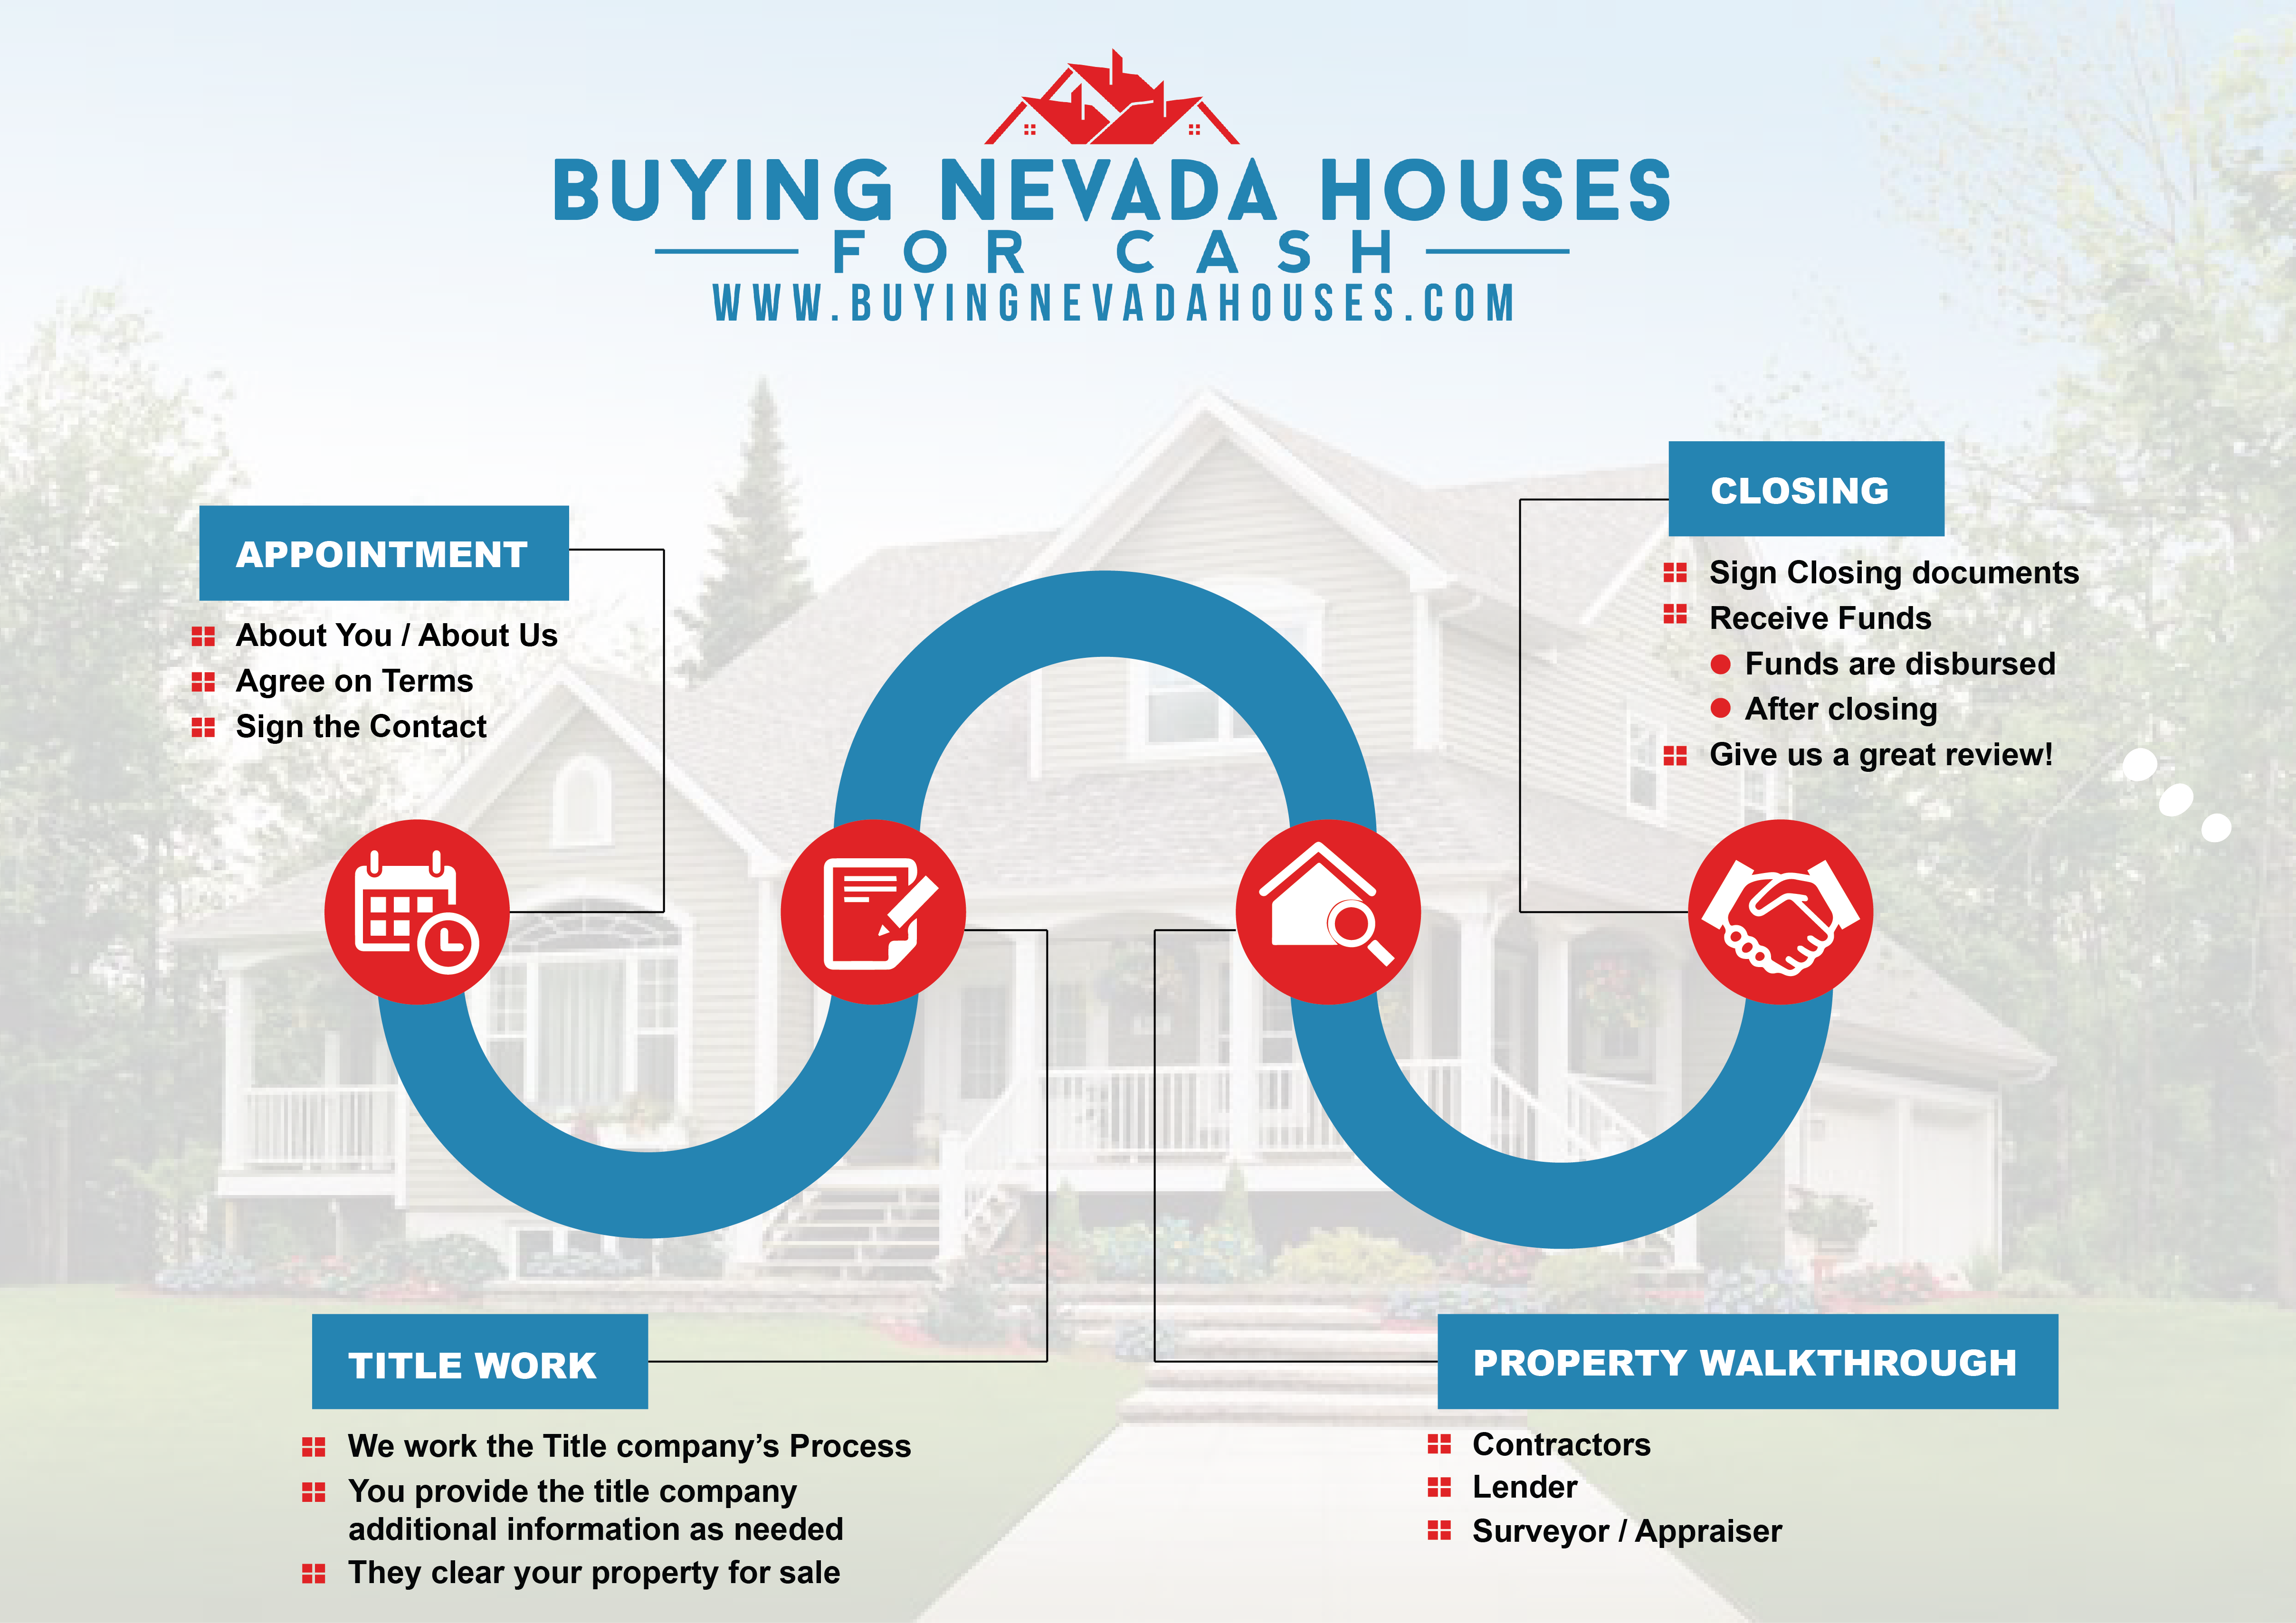 Las vegas home buying process buying nevada houses for House to buy in las vegas